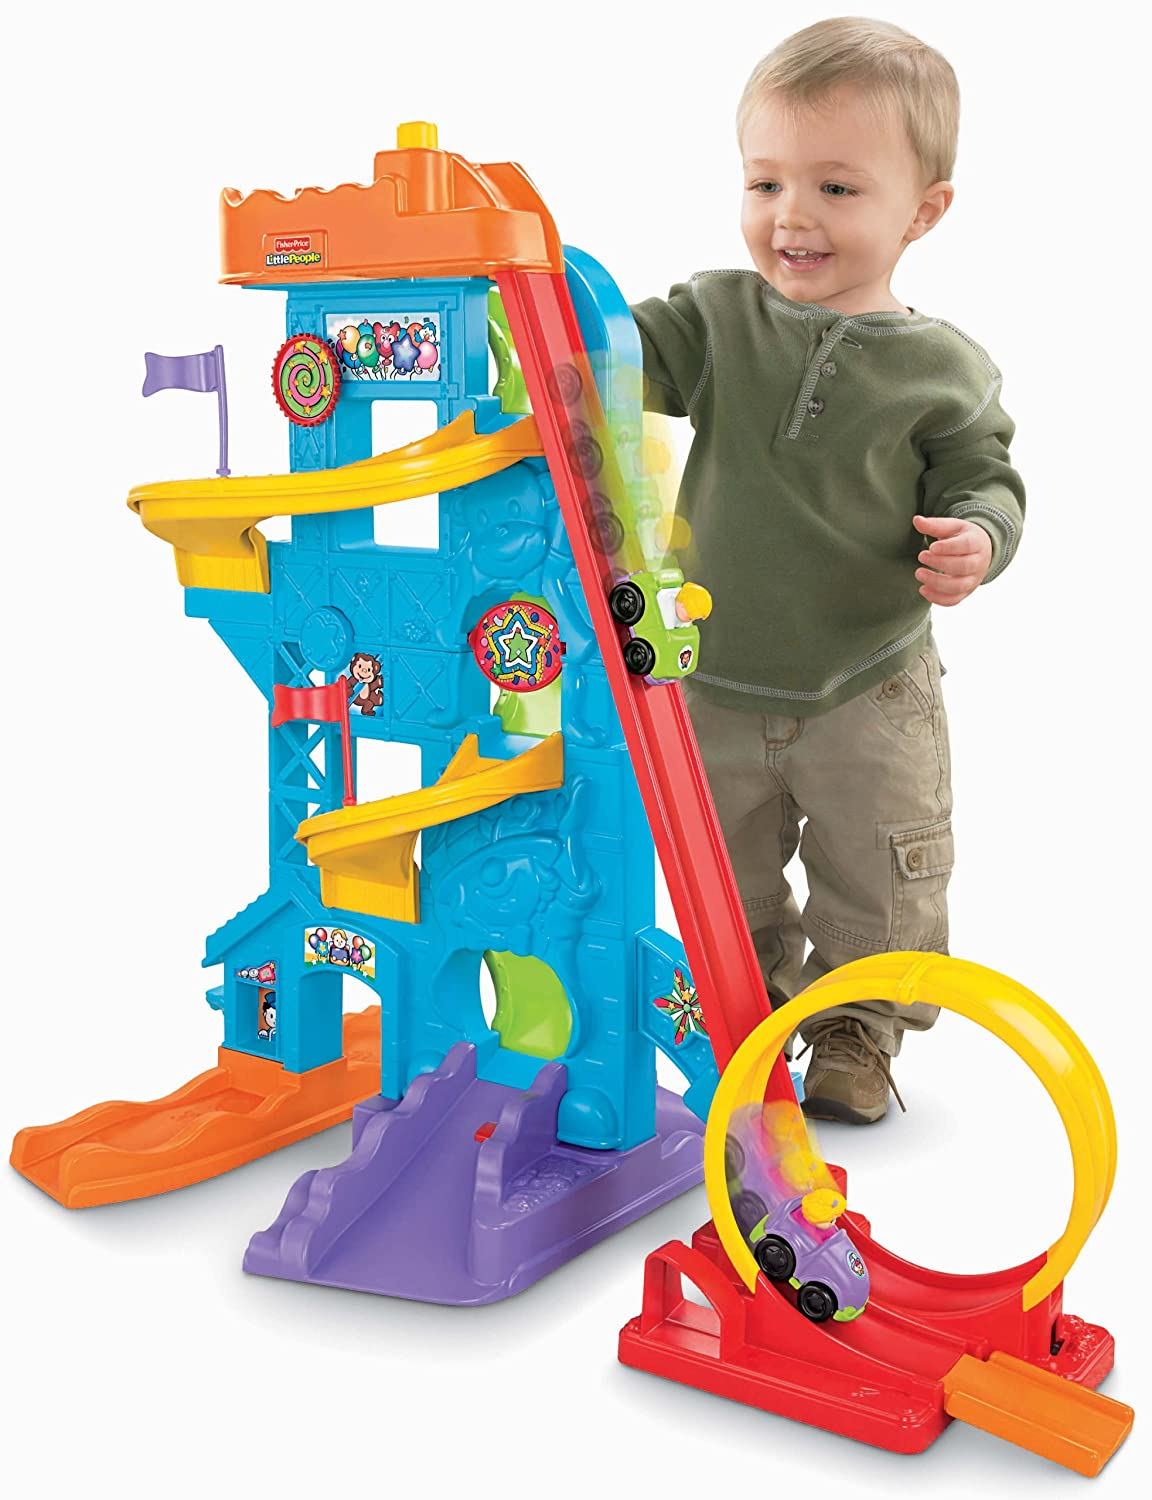 Unique Fun For Little Boys Toys : Best gifts for year old boys in itsy bitsy fun